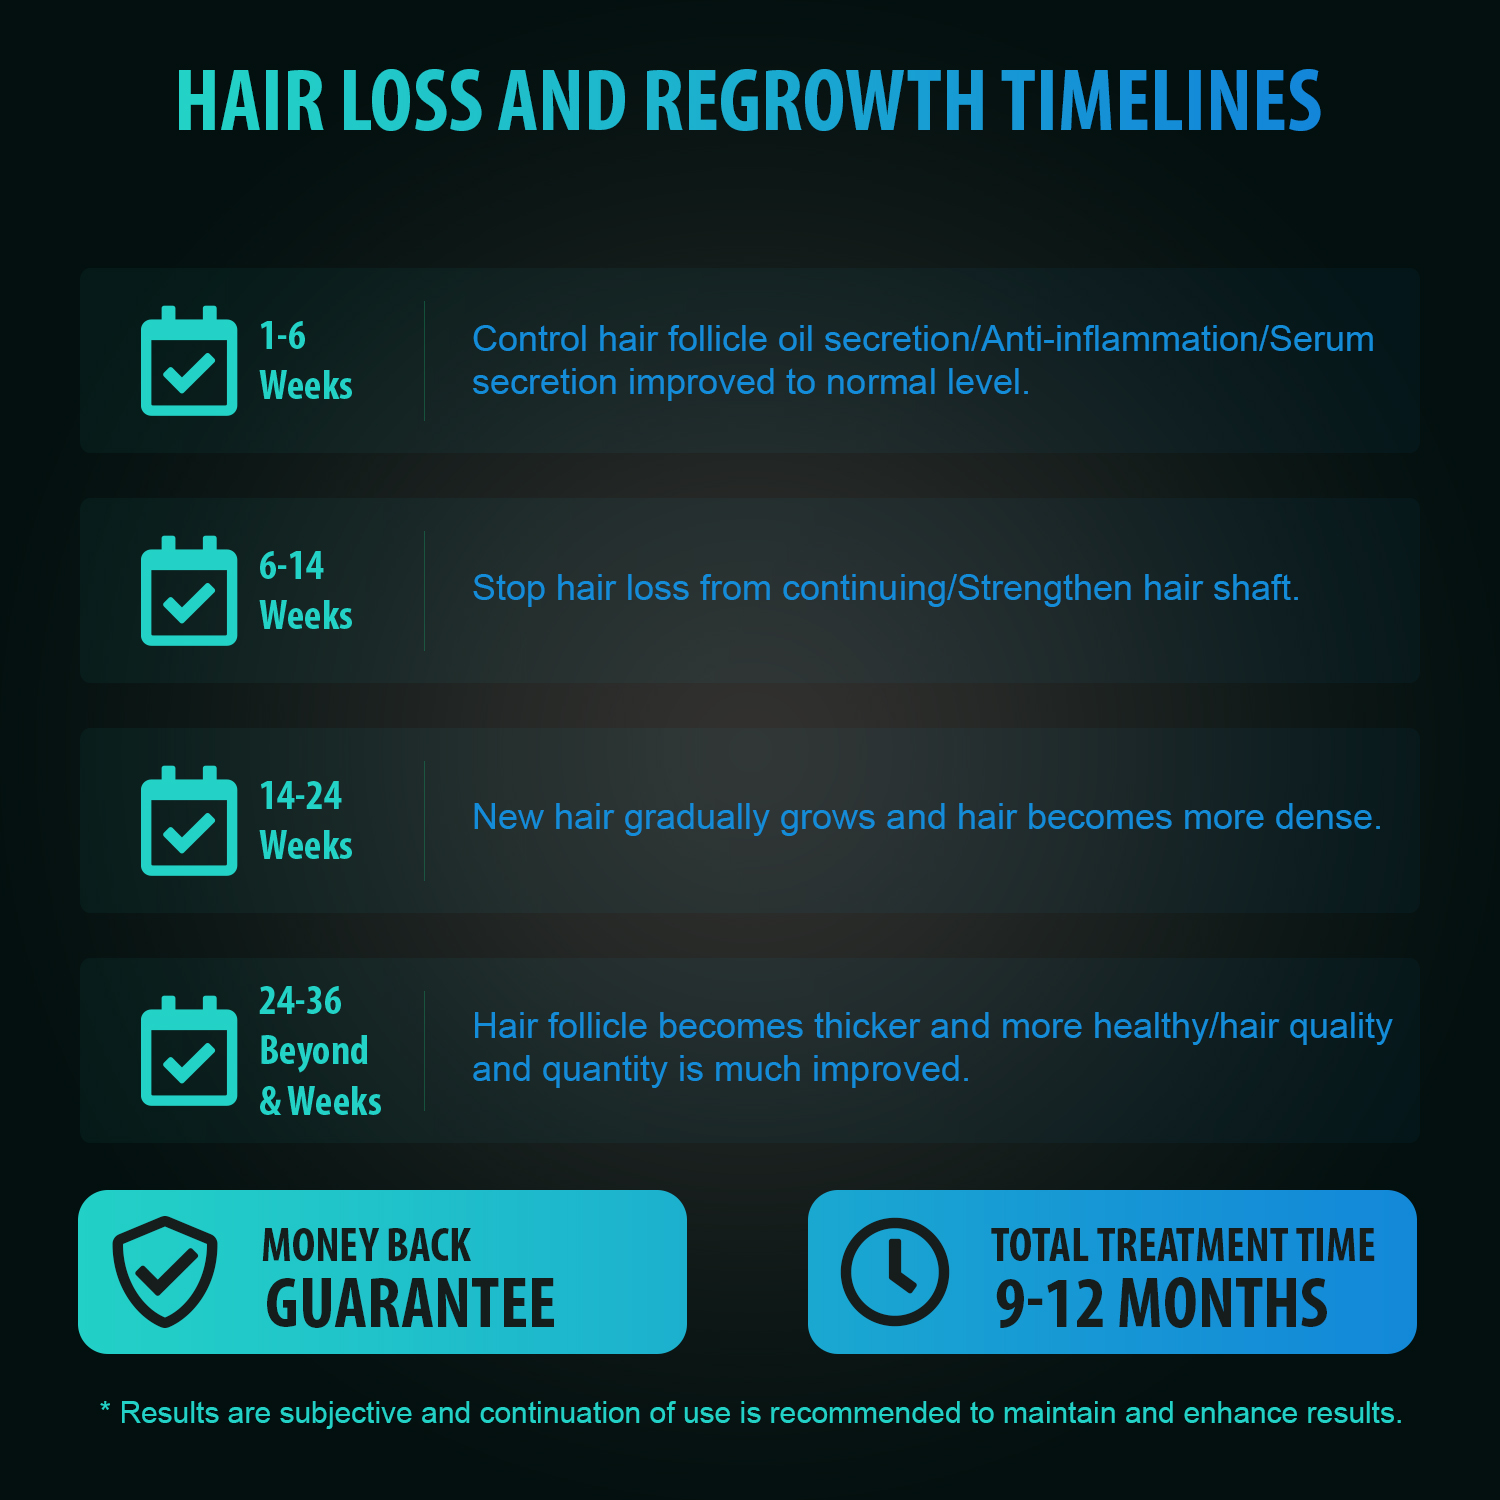 Laser hero – Laser Hair Growth Cap – Restore Hair Loss with FDA Cleared Medical Grade Laser Helmet - Hair Regrowth for Men and Women with Thinning Hair (Blue)